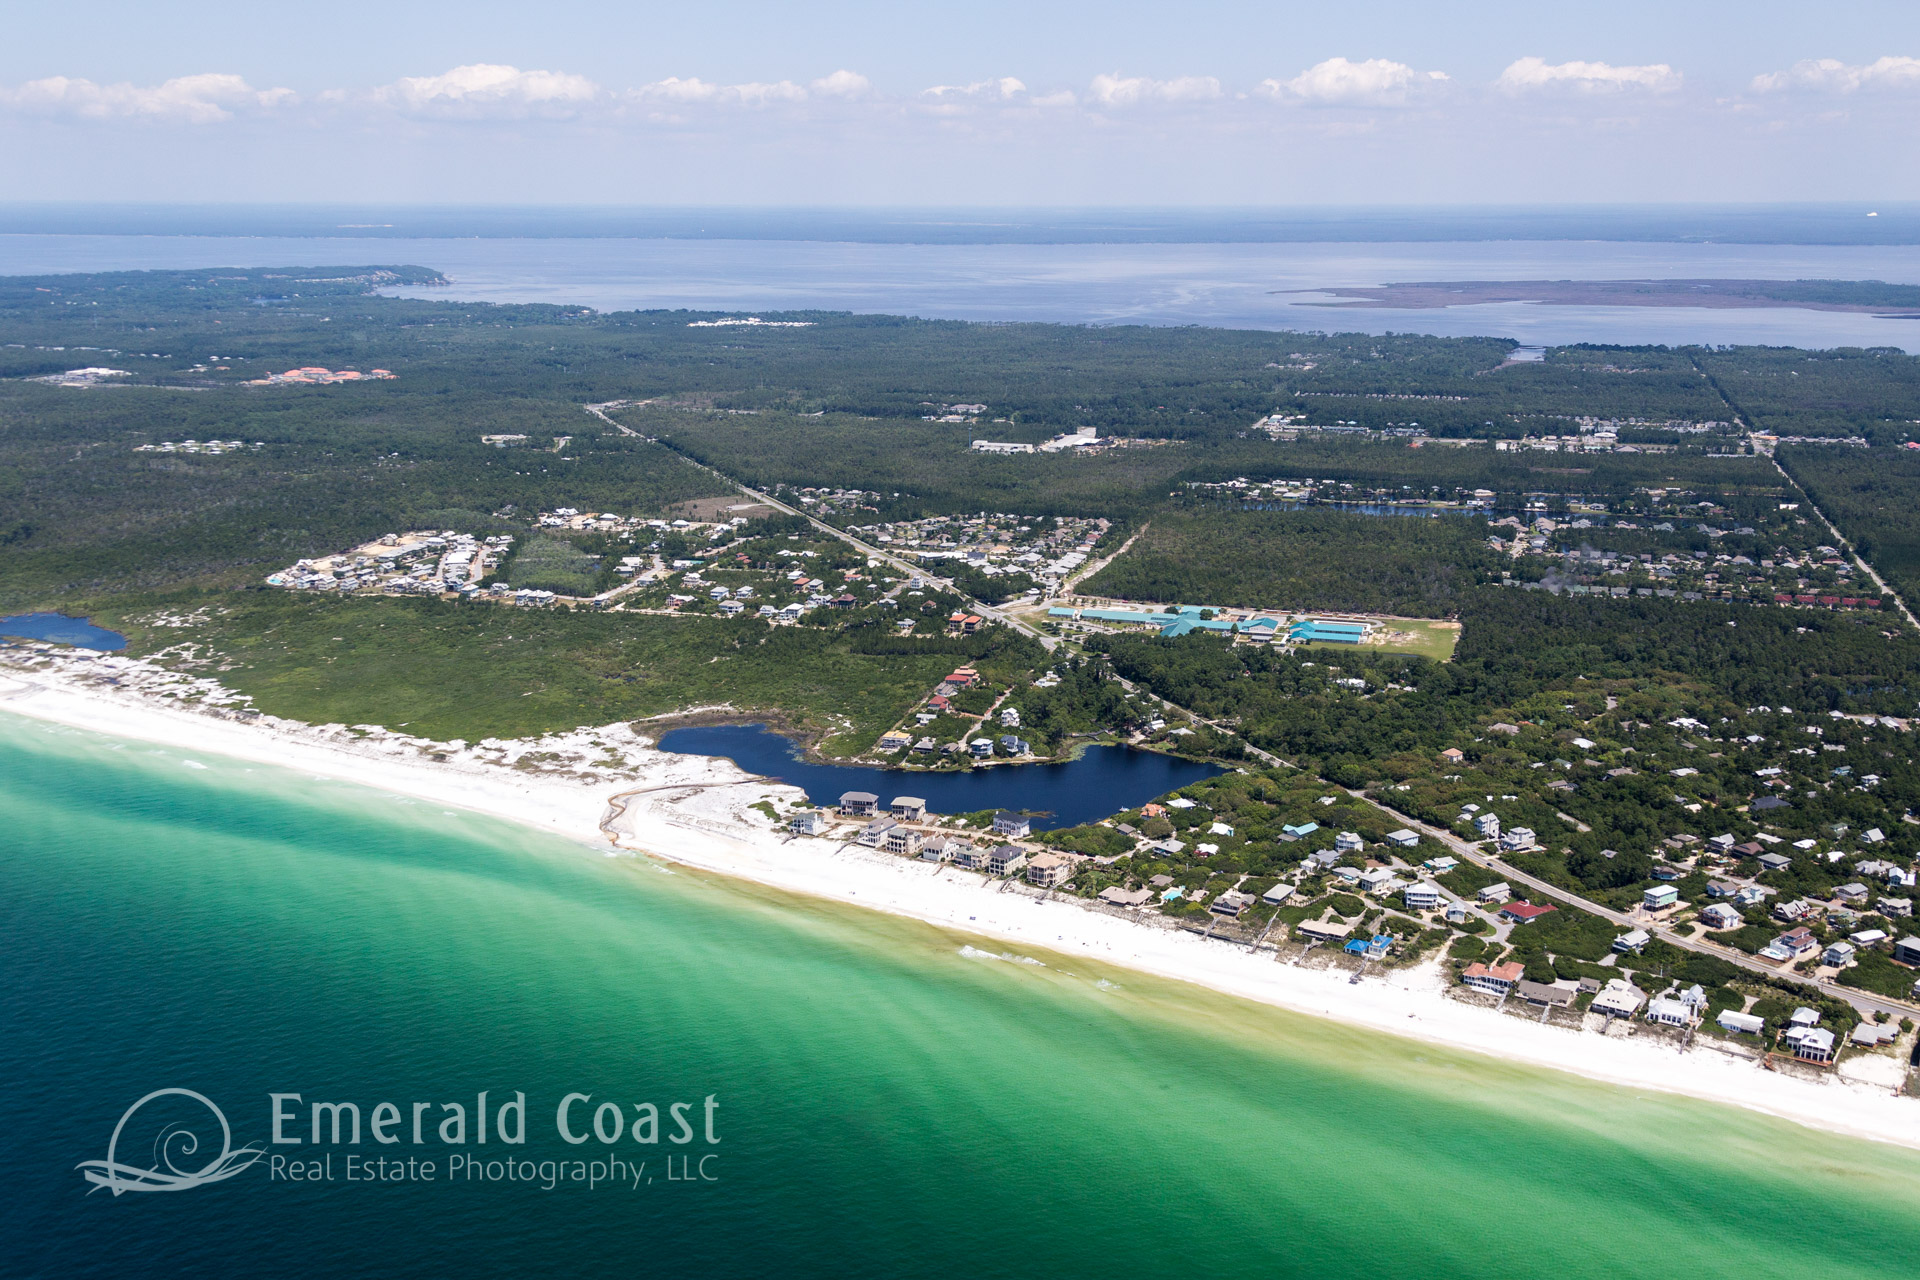 Aerial view of County Highway 30A, Santa Rosa Beach, Florida